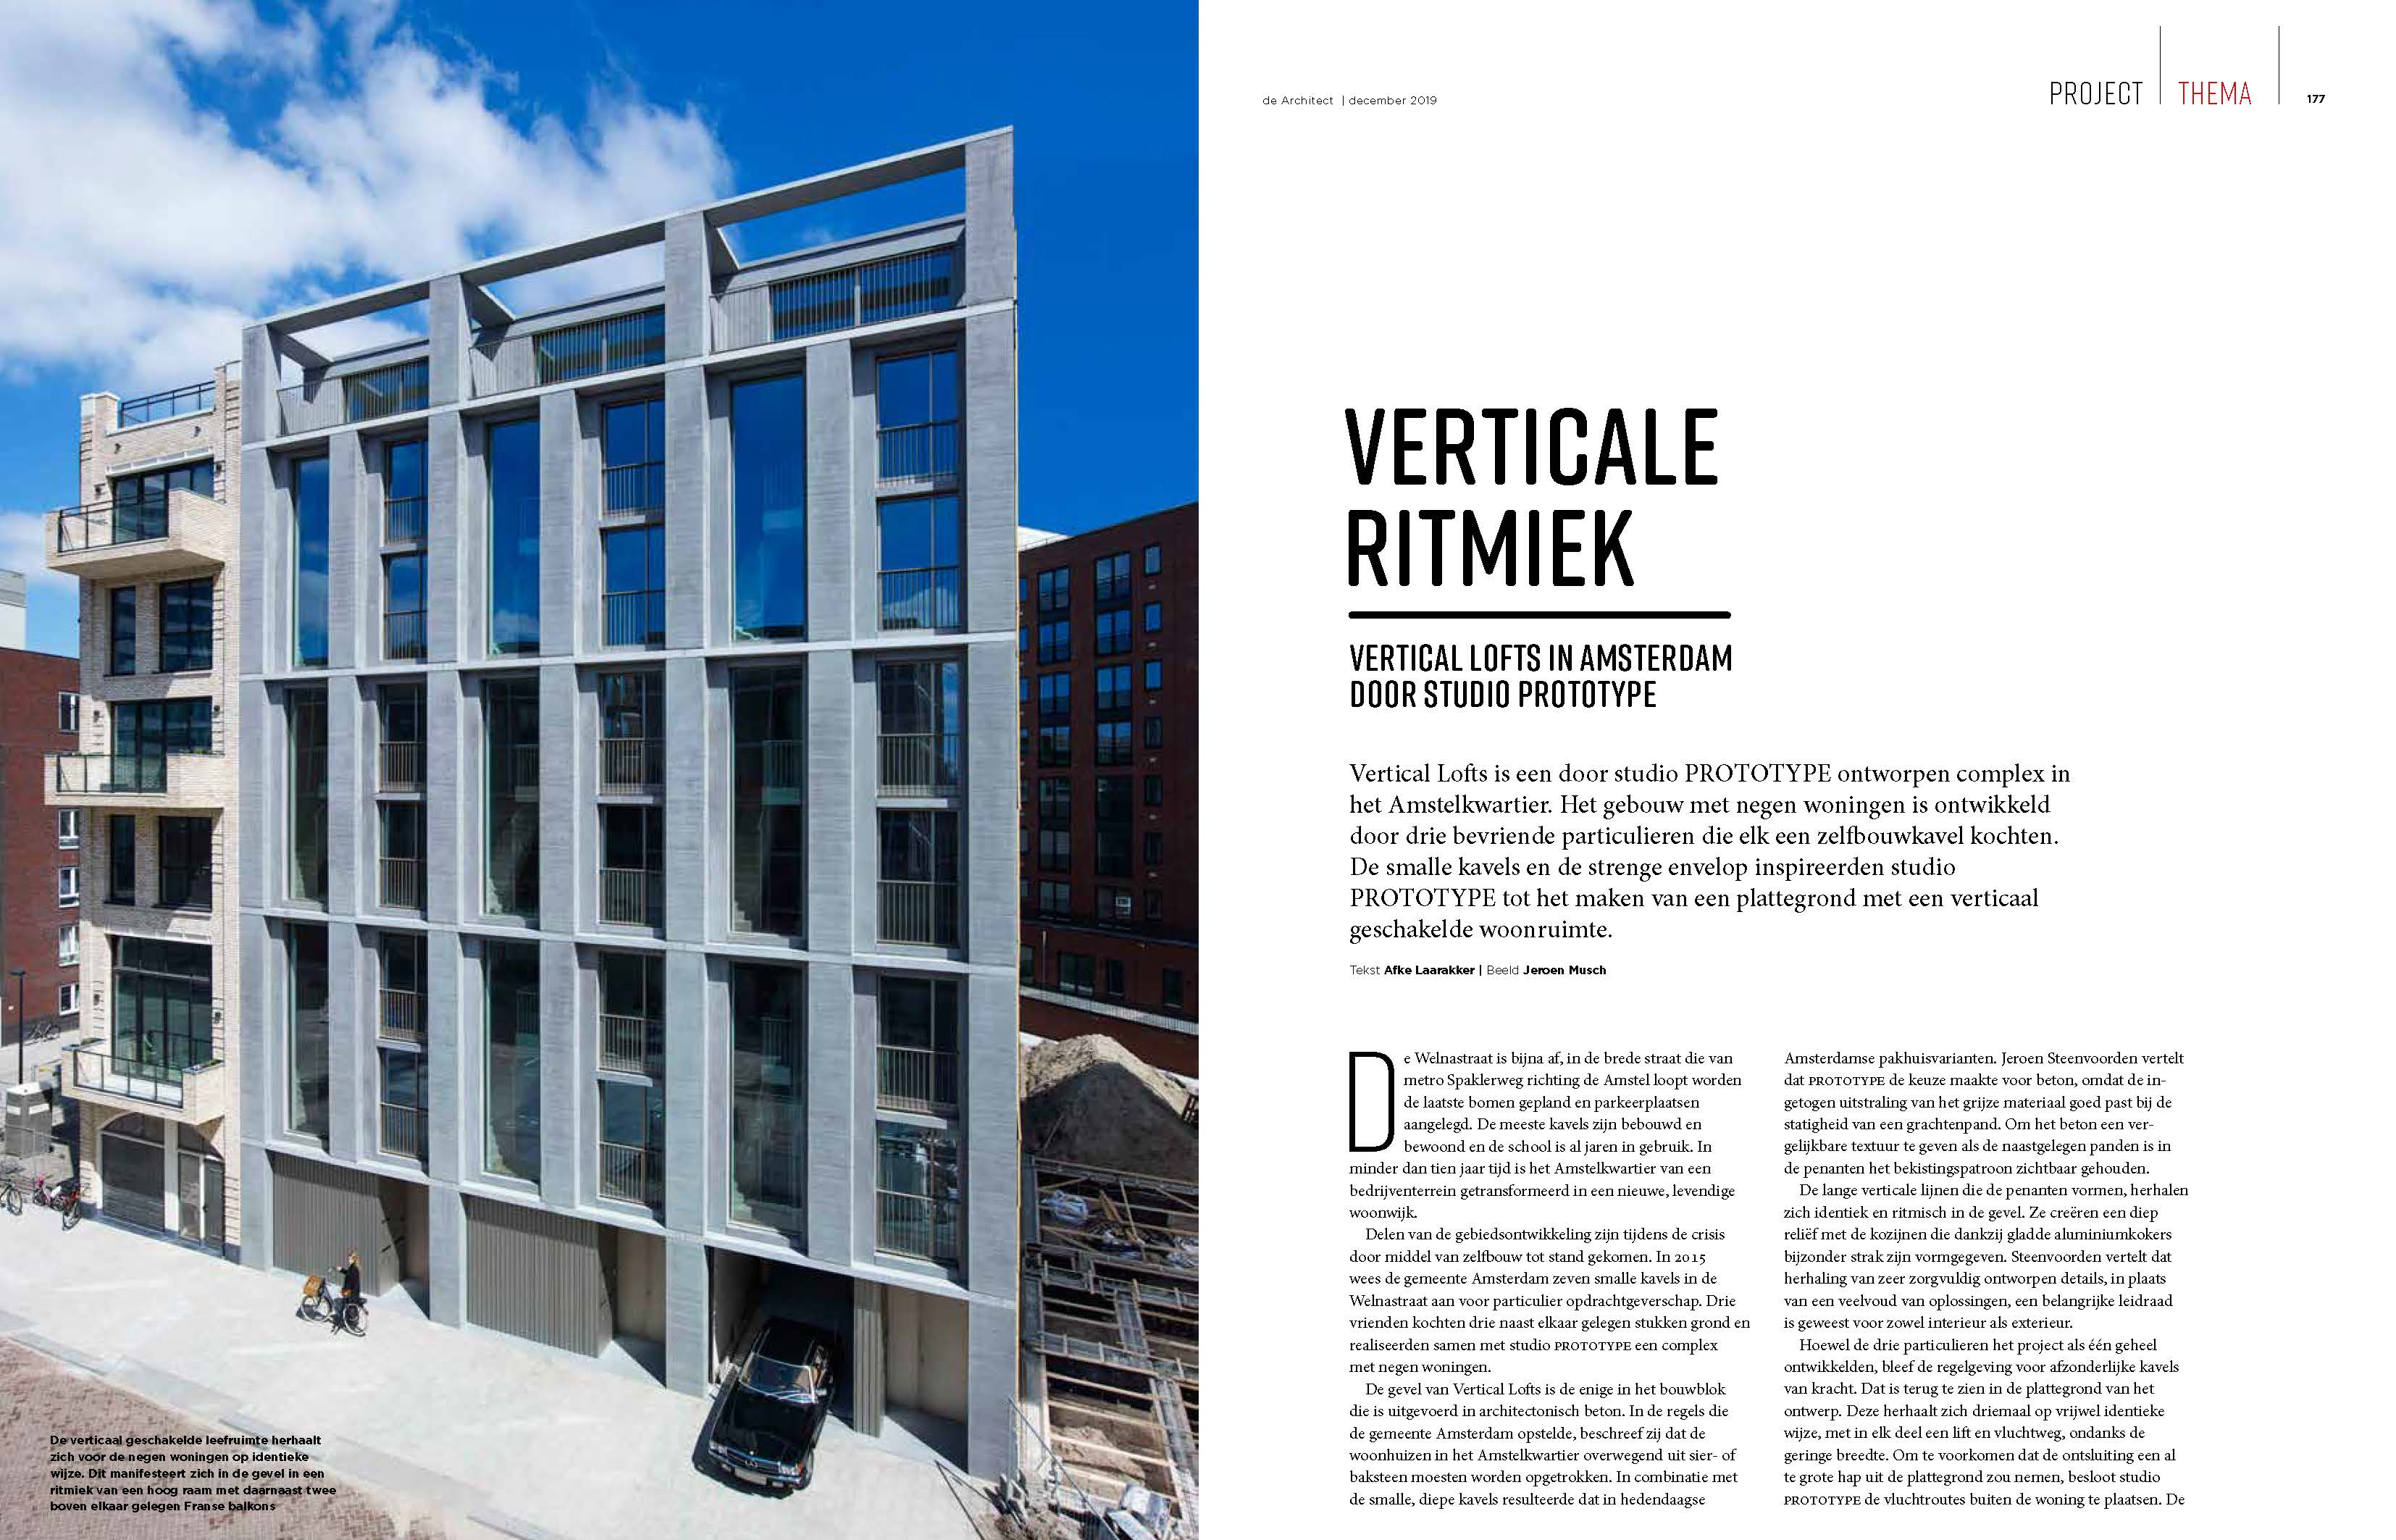 ARTIKEL VERTICAL LOFTS IN MAGAZINE 'DE ARCHITECT'